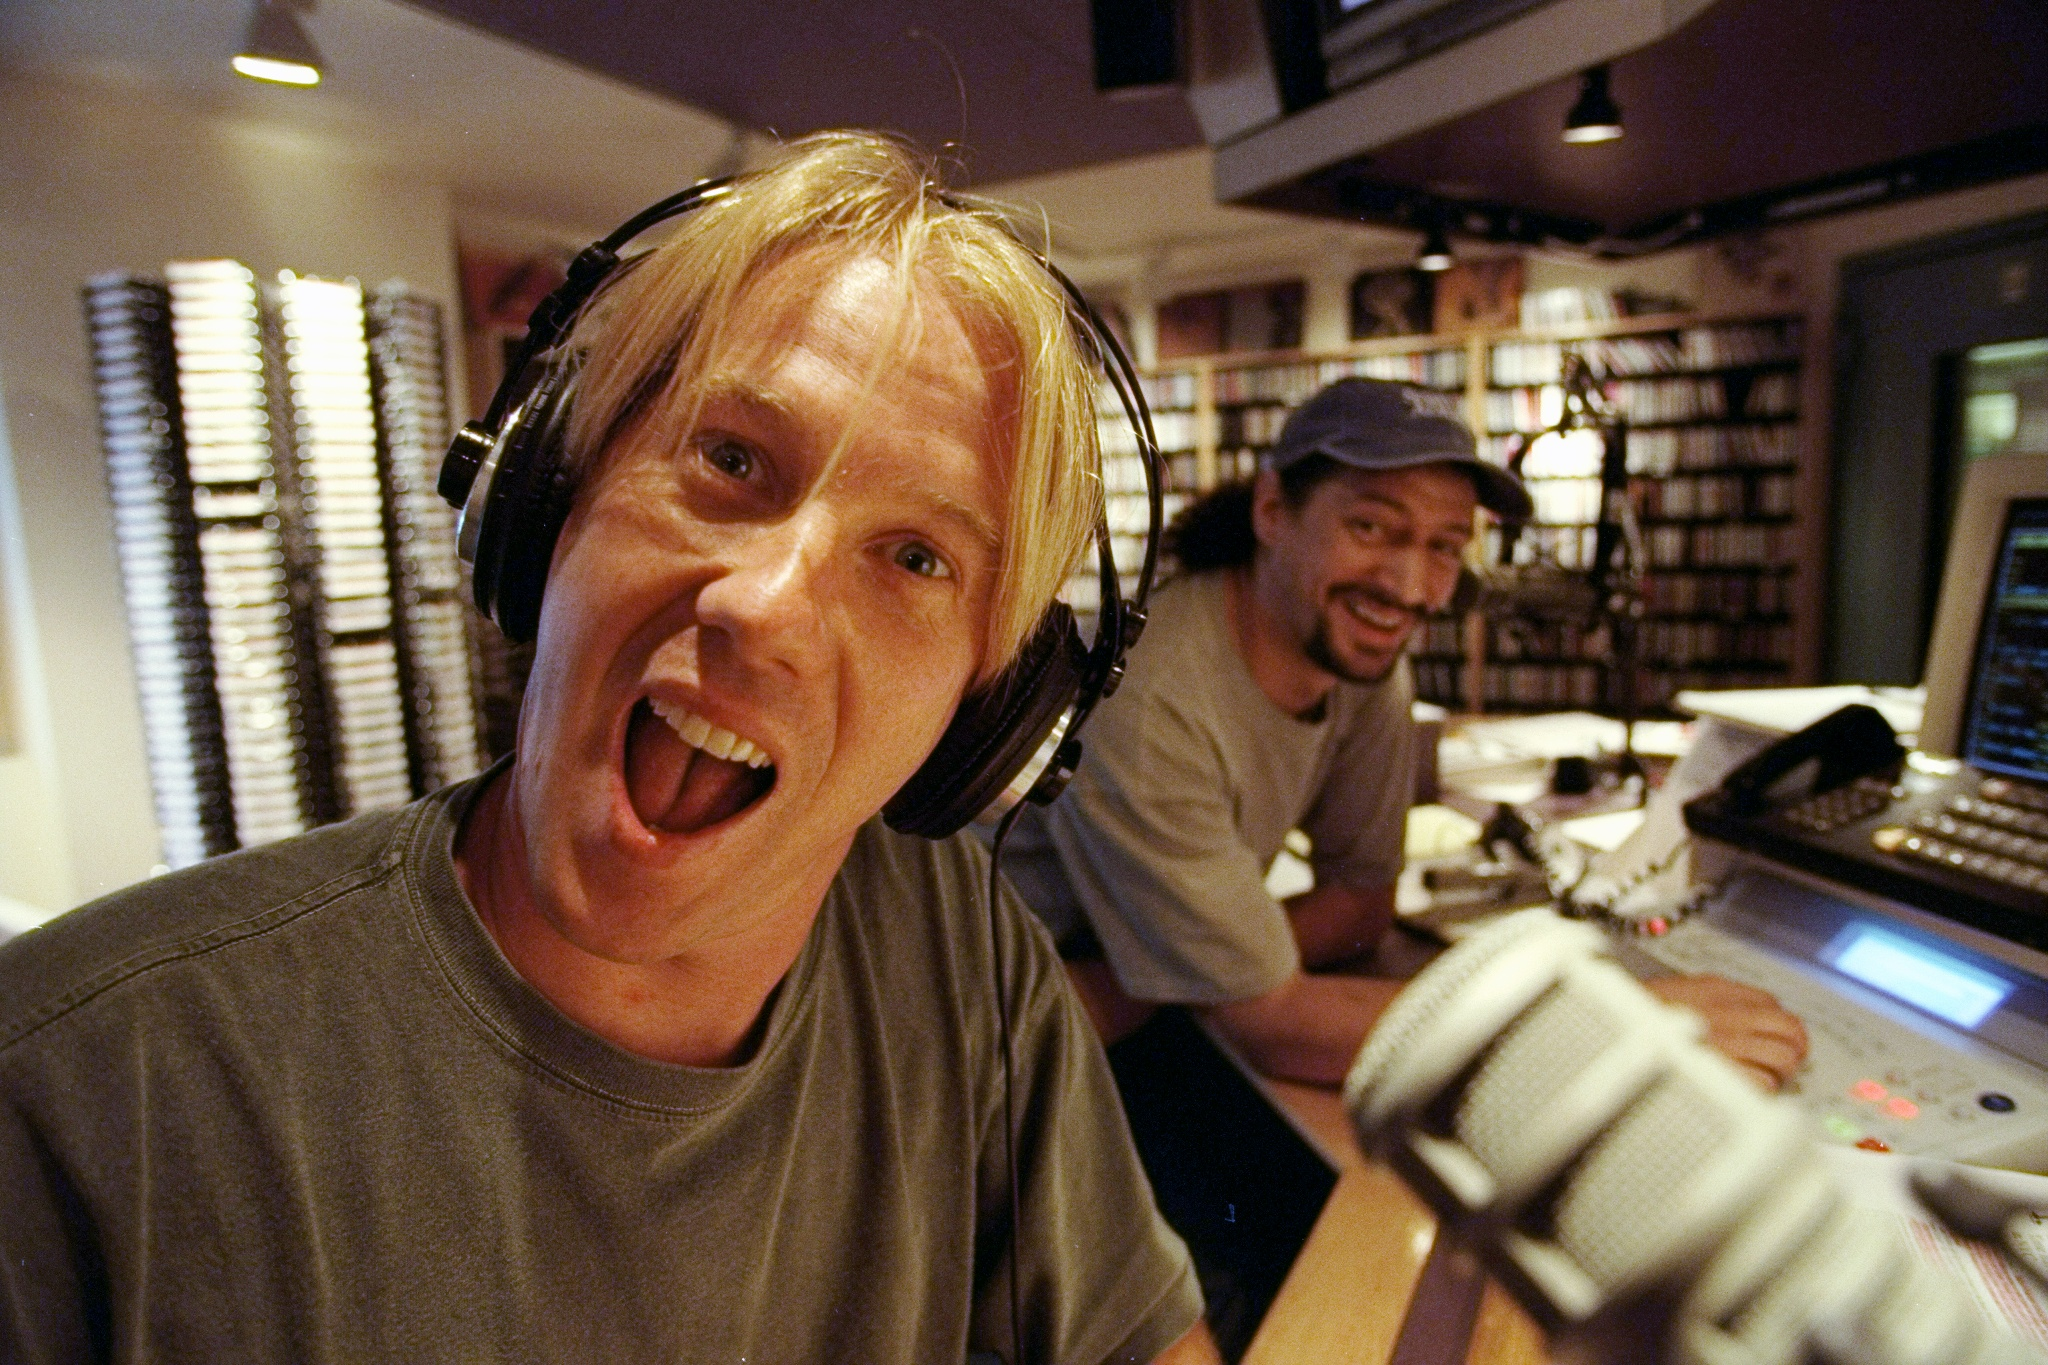 Spoiler: This wacky photo was taken in 2000, which lets you know that Opie and Anthony survived the scandal. (New York Daily News Archive/Contributor/Getty Images)